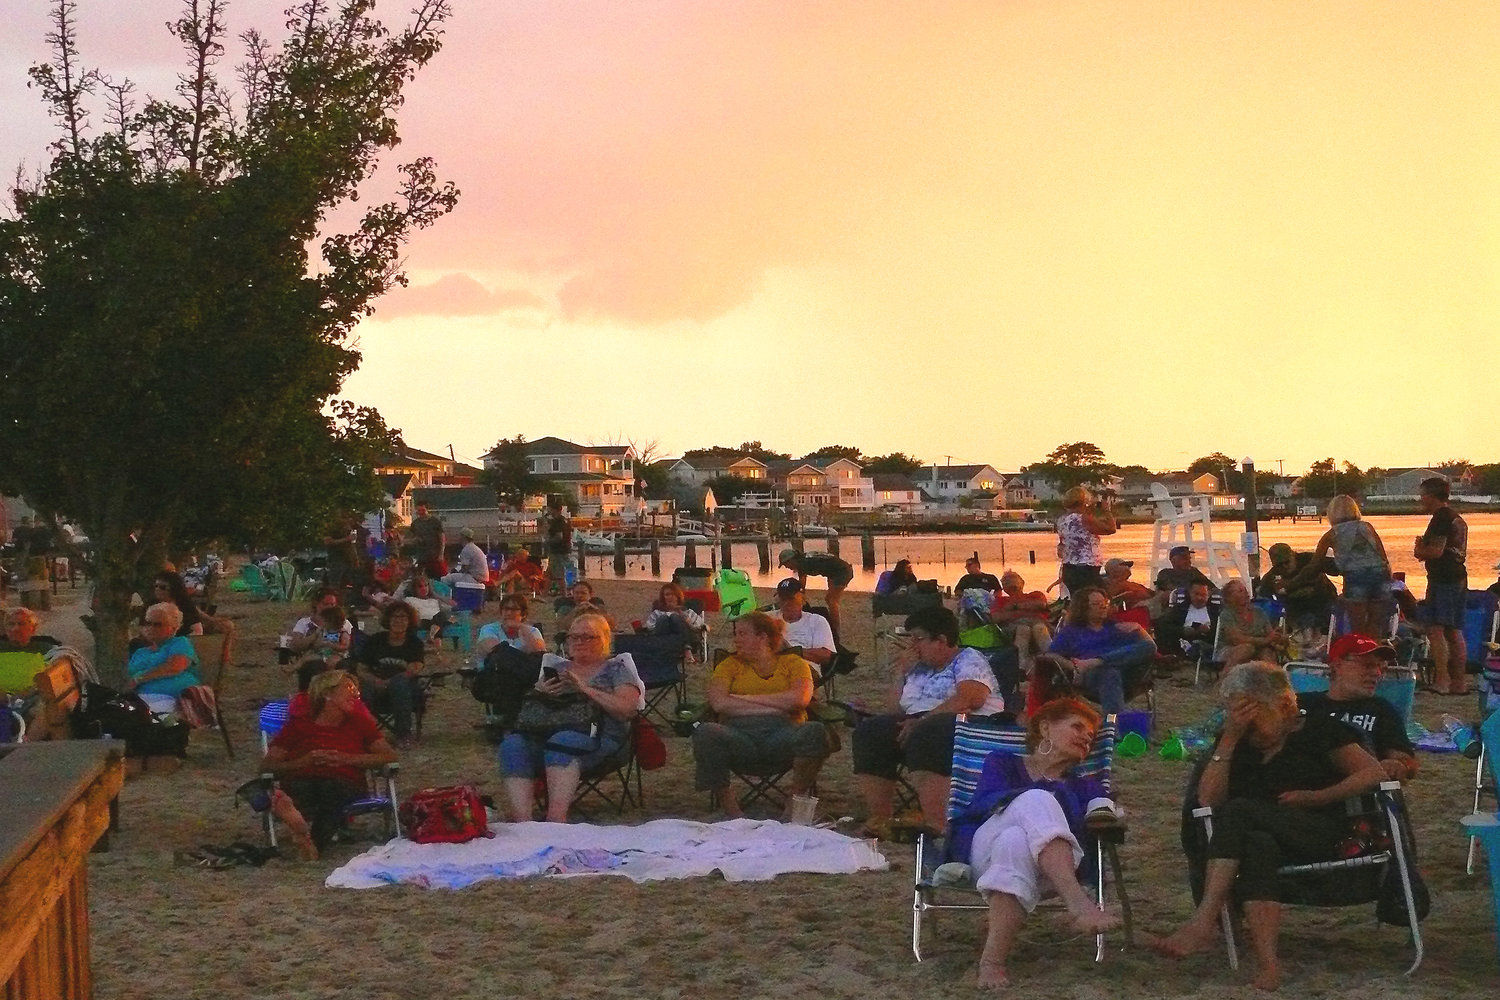 Dozens of Island Park residents came to Masone Beach on Aug. 9 for a concert by Captain Jack, a Long Island-based Billy Joel cover band.